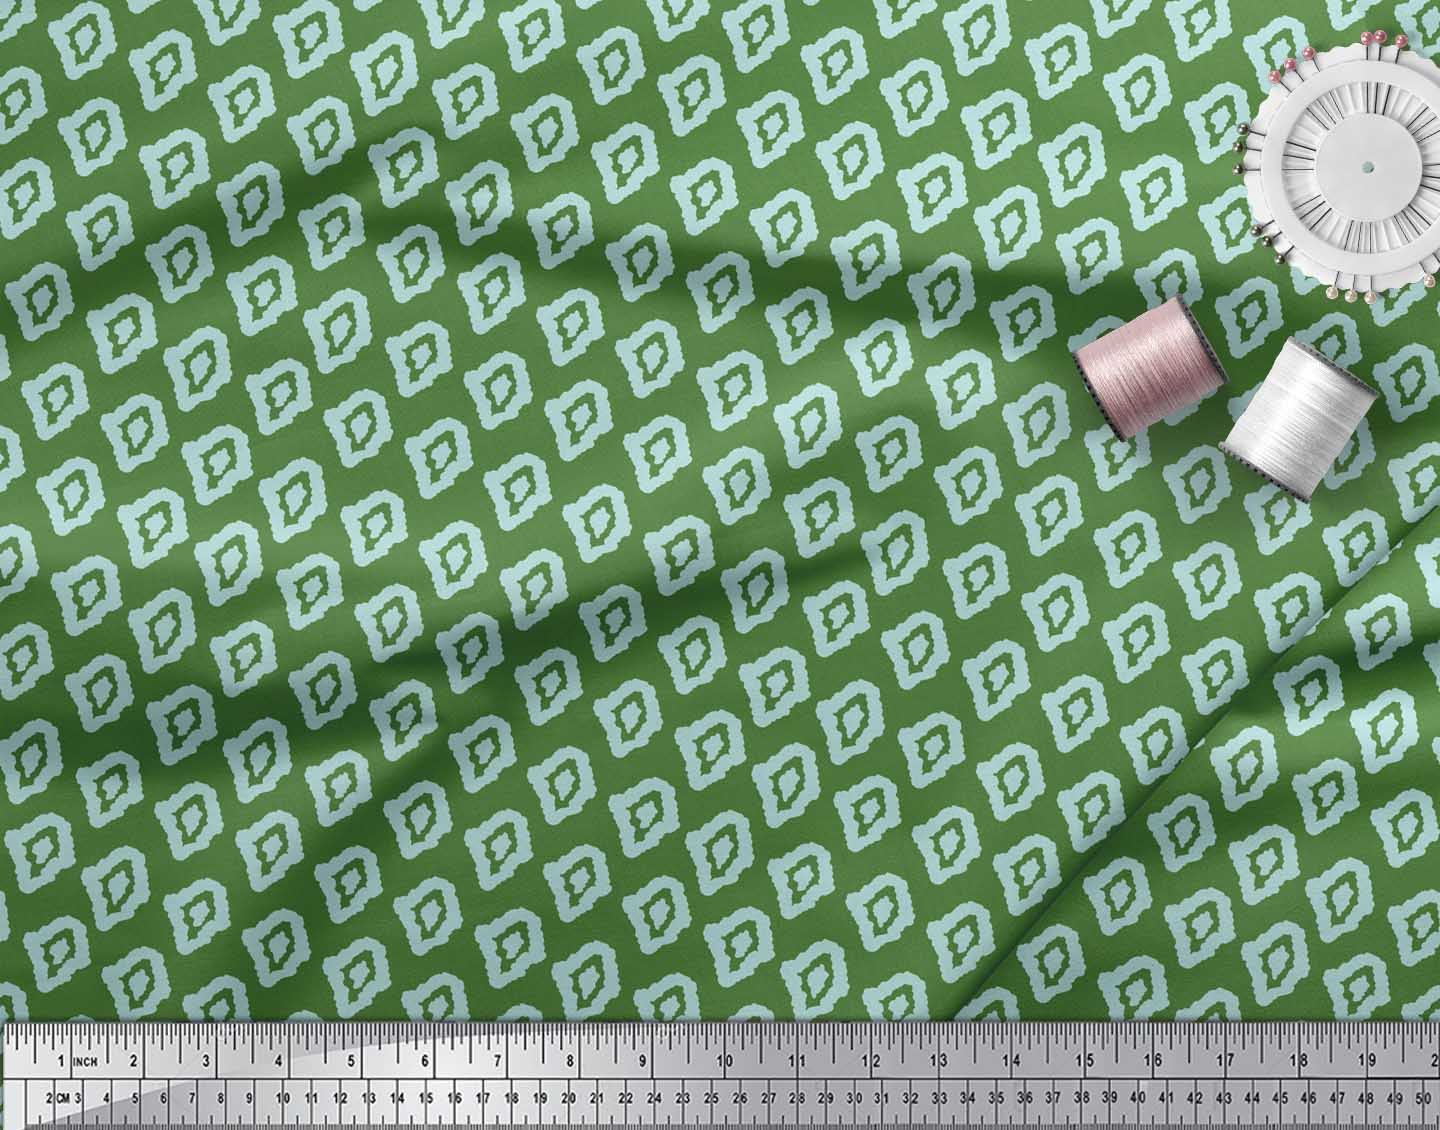 Soimoi-Green-Cotton-Poplin-Fabric-Abstracts-Abstract-Fabric-Prints-uvO thumbnail 3